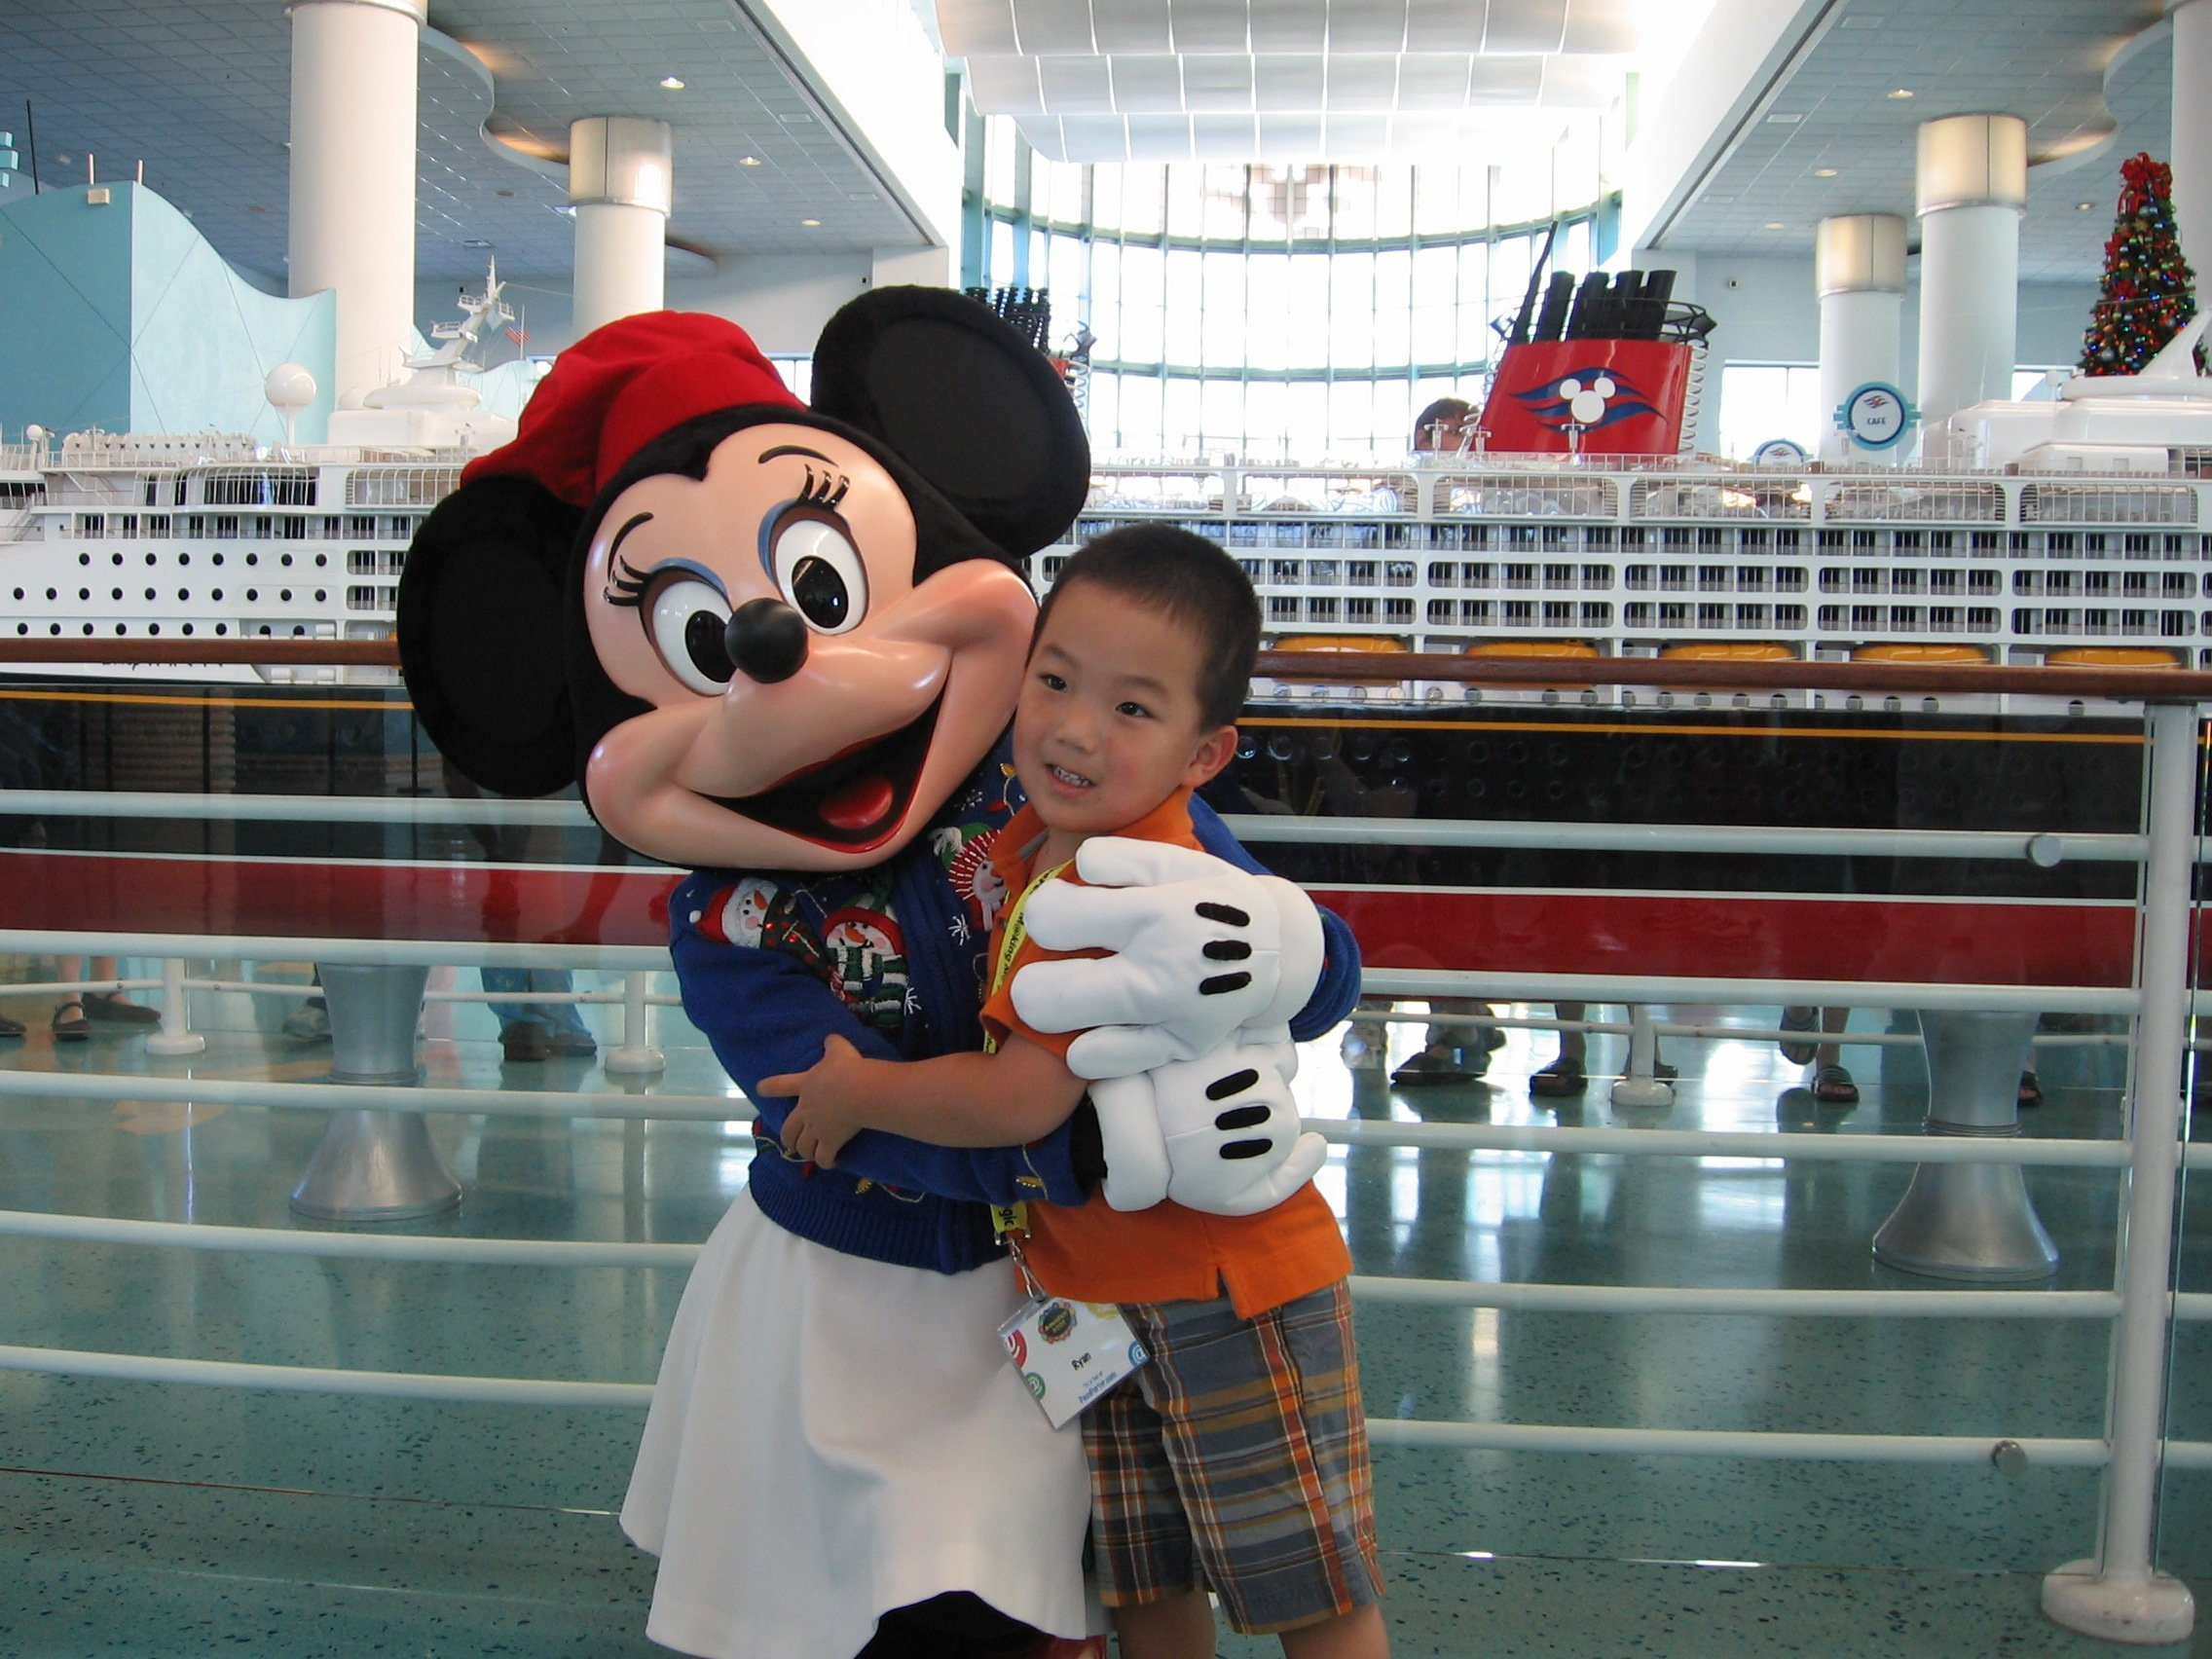 Minnie Mouse greets guests waiting to board the Disney Cruise ships